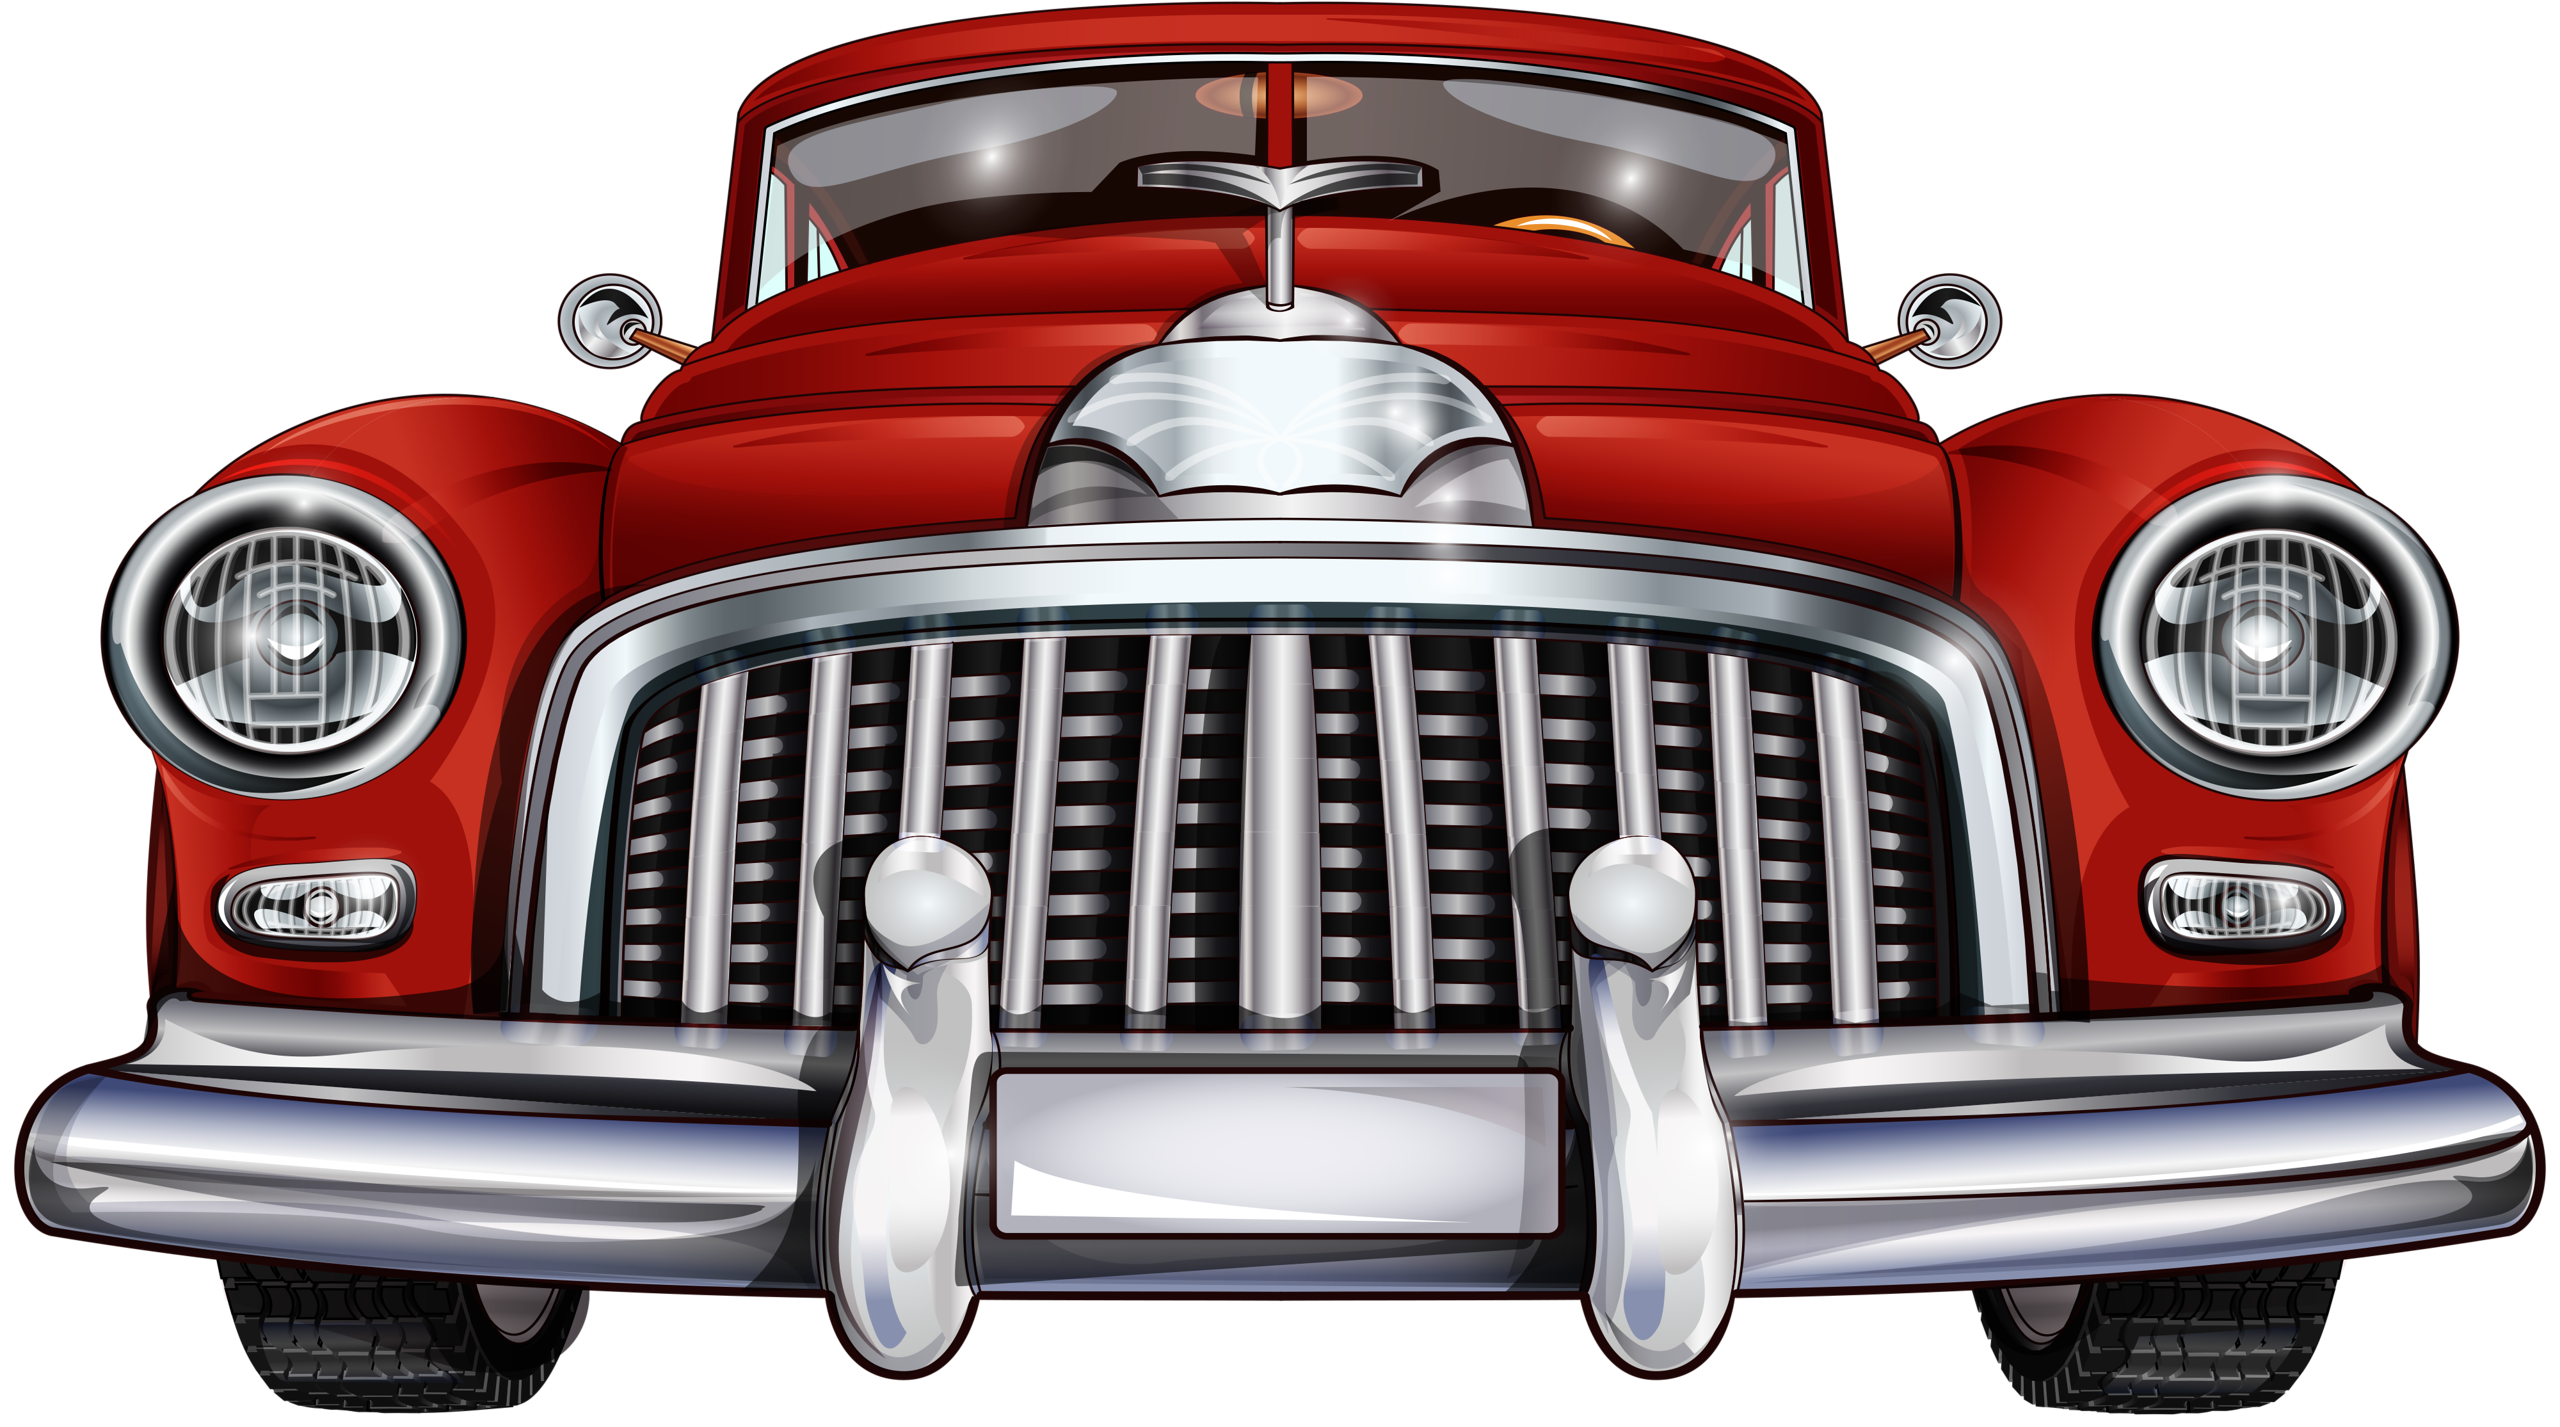 Classic Car clipart red classic Яндекс CarsVintage Фотки Cars Pinterest